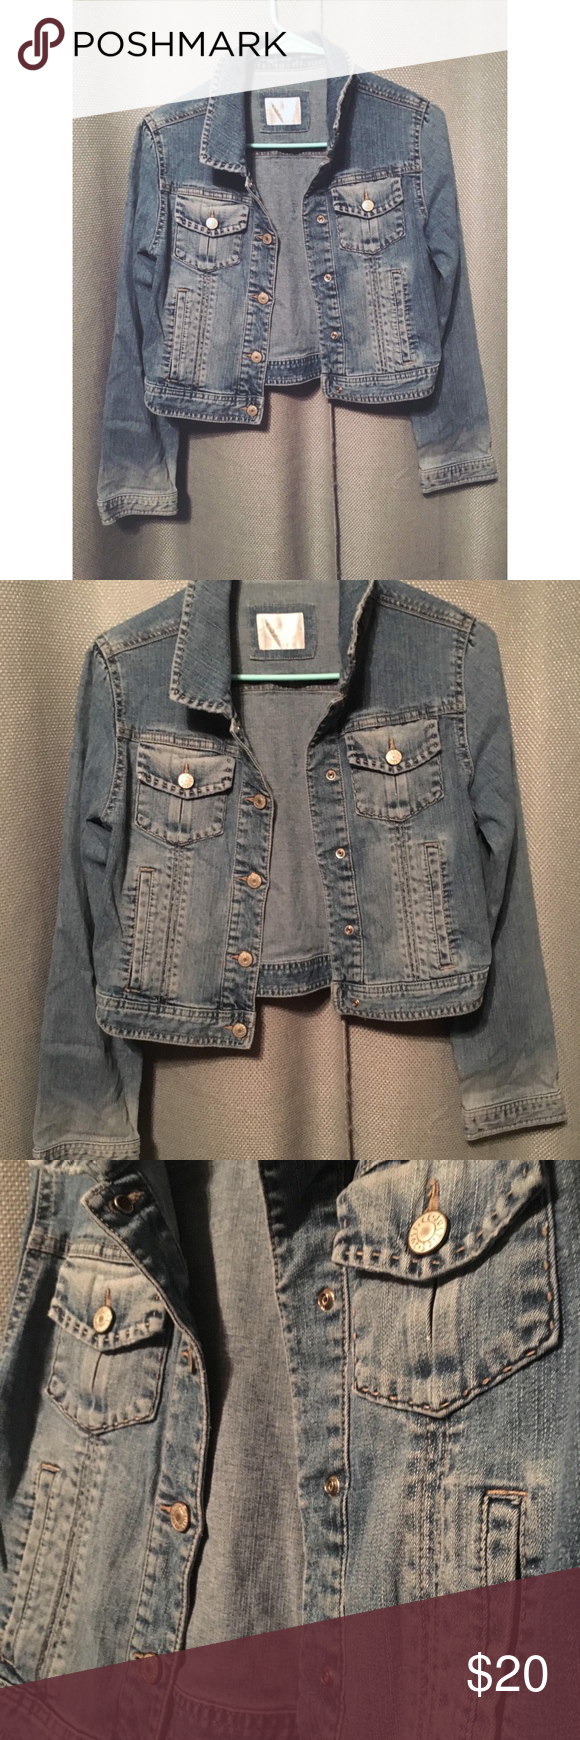 fc727375bff0 JUSTICE Girls Jean Jacket in 2018